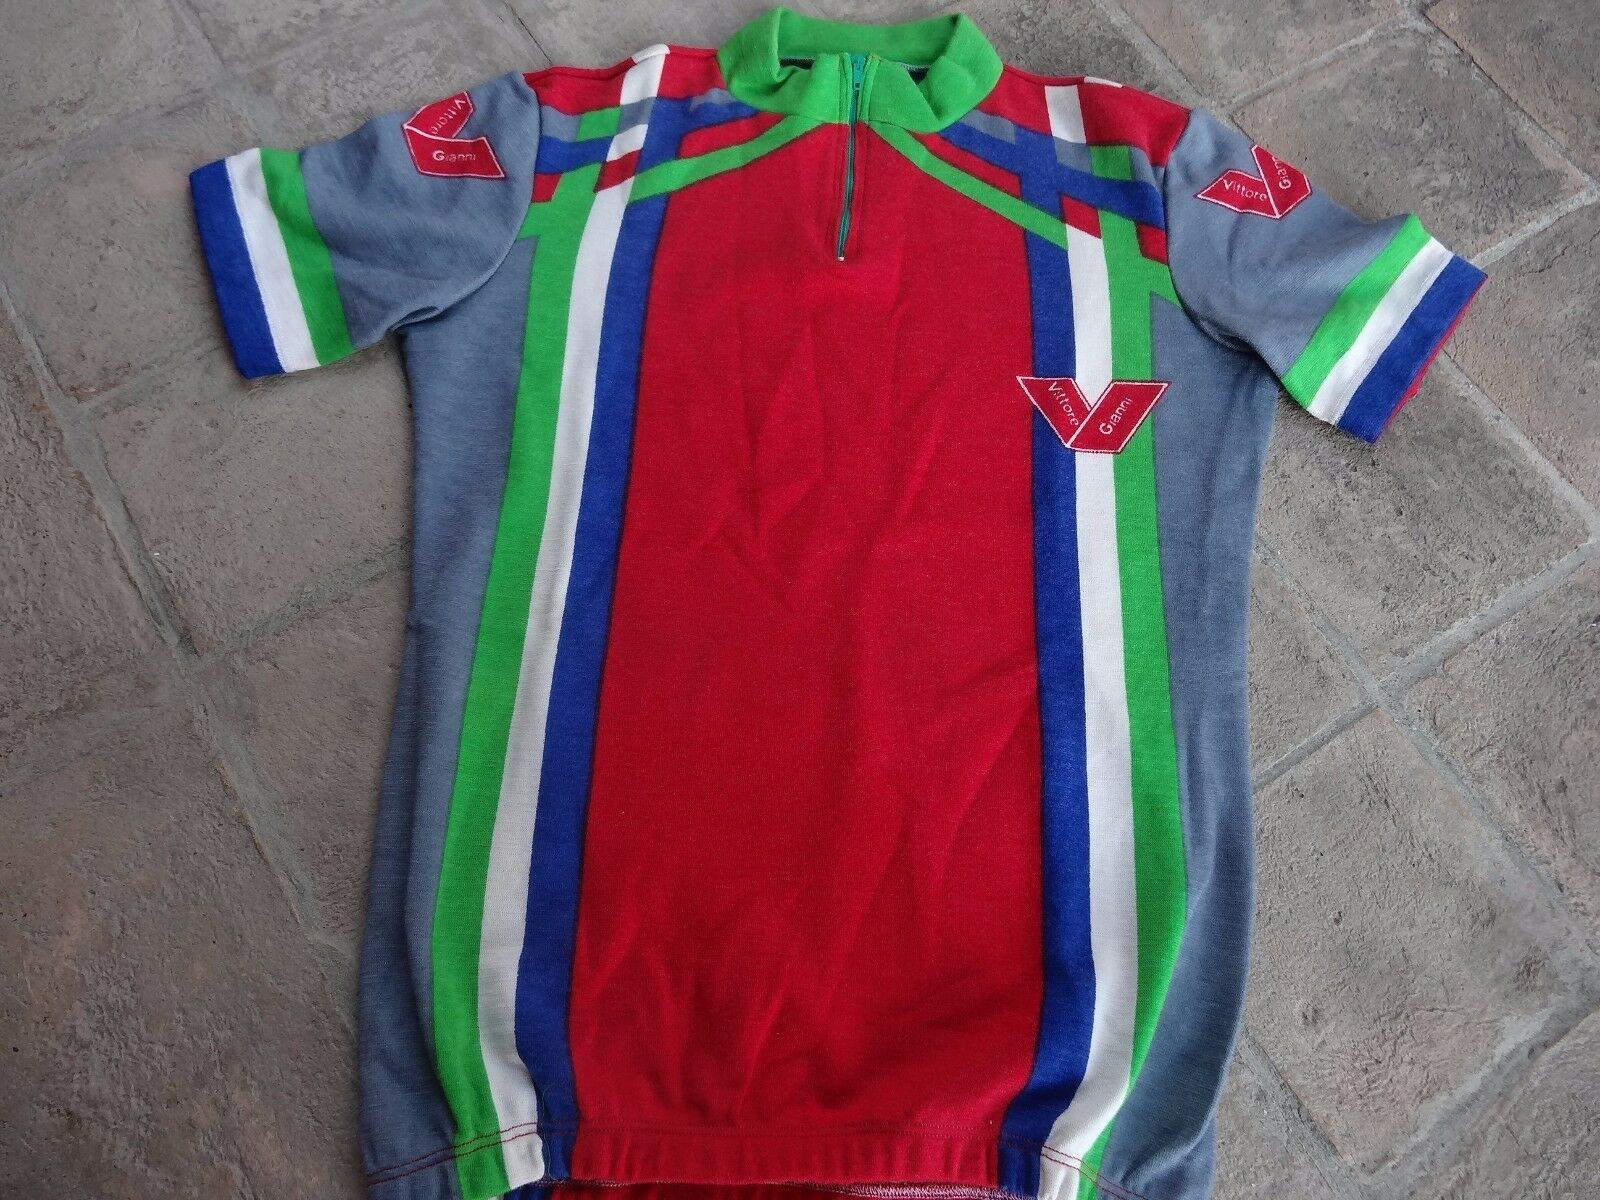 NOS  Gianni  Vittore cycling  jersey wool